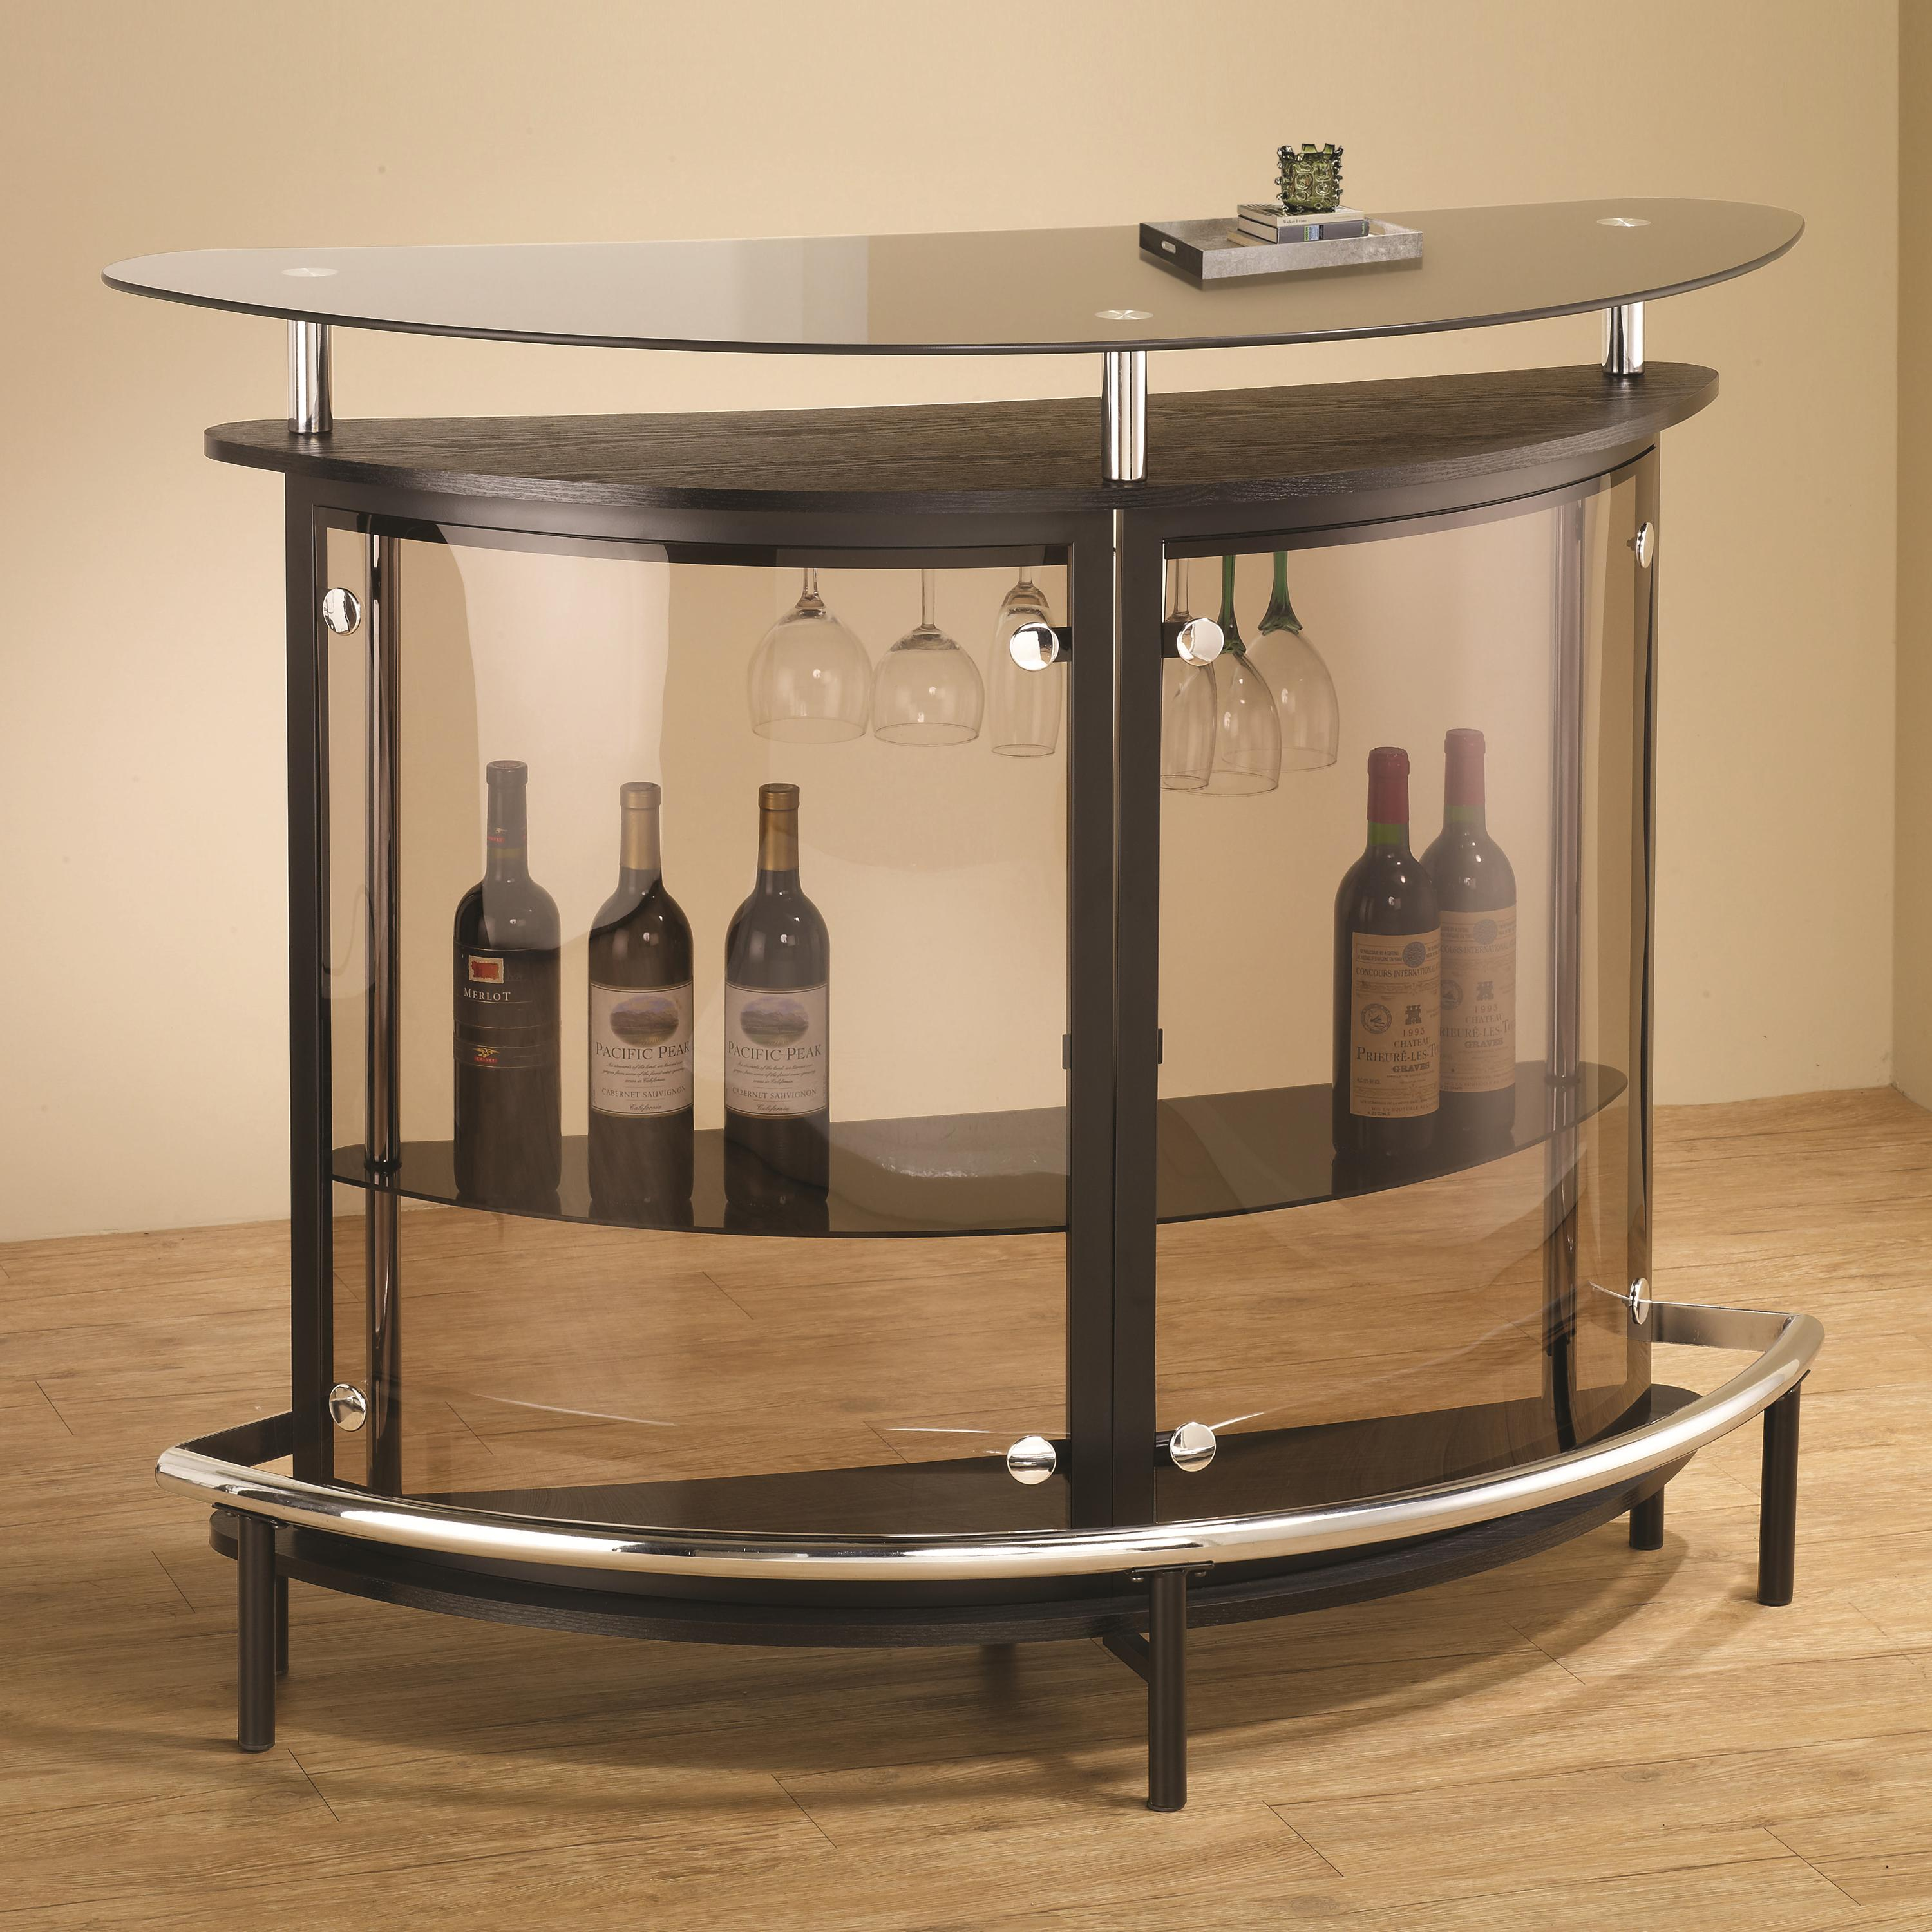 Coaster Bar Units And Bar Tables 101065 Contemporary Bar Unit With Smoked Acrylic Front Del